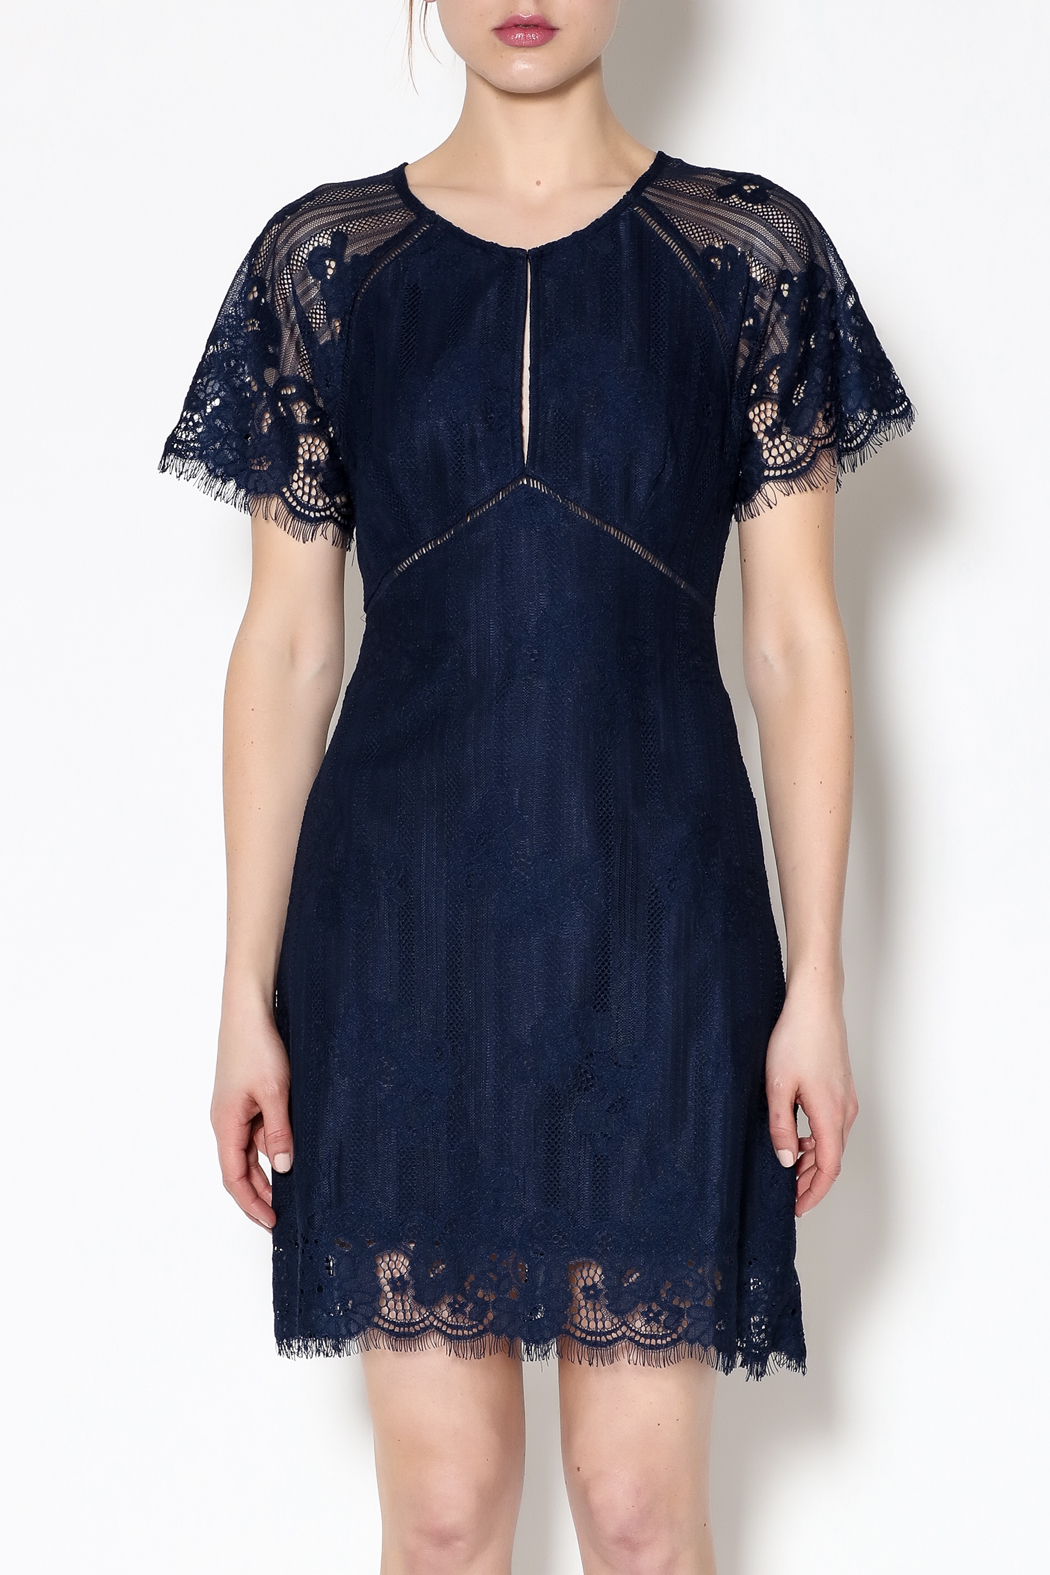 ASTR Shelley Navy Dress - Side Cropped Image